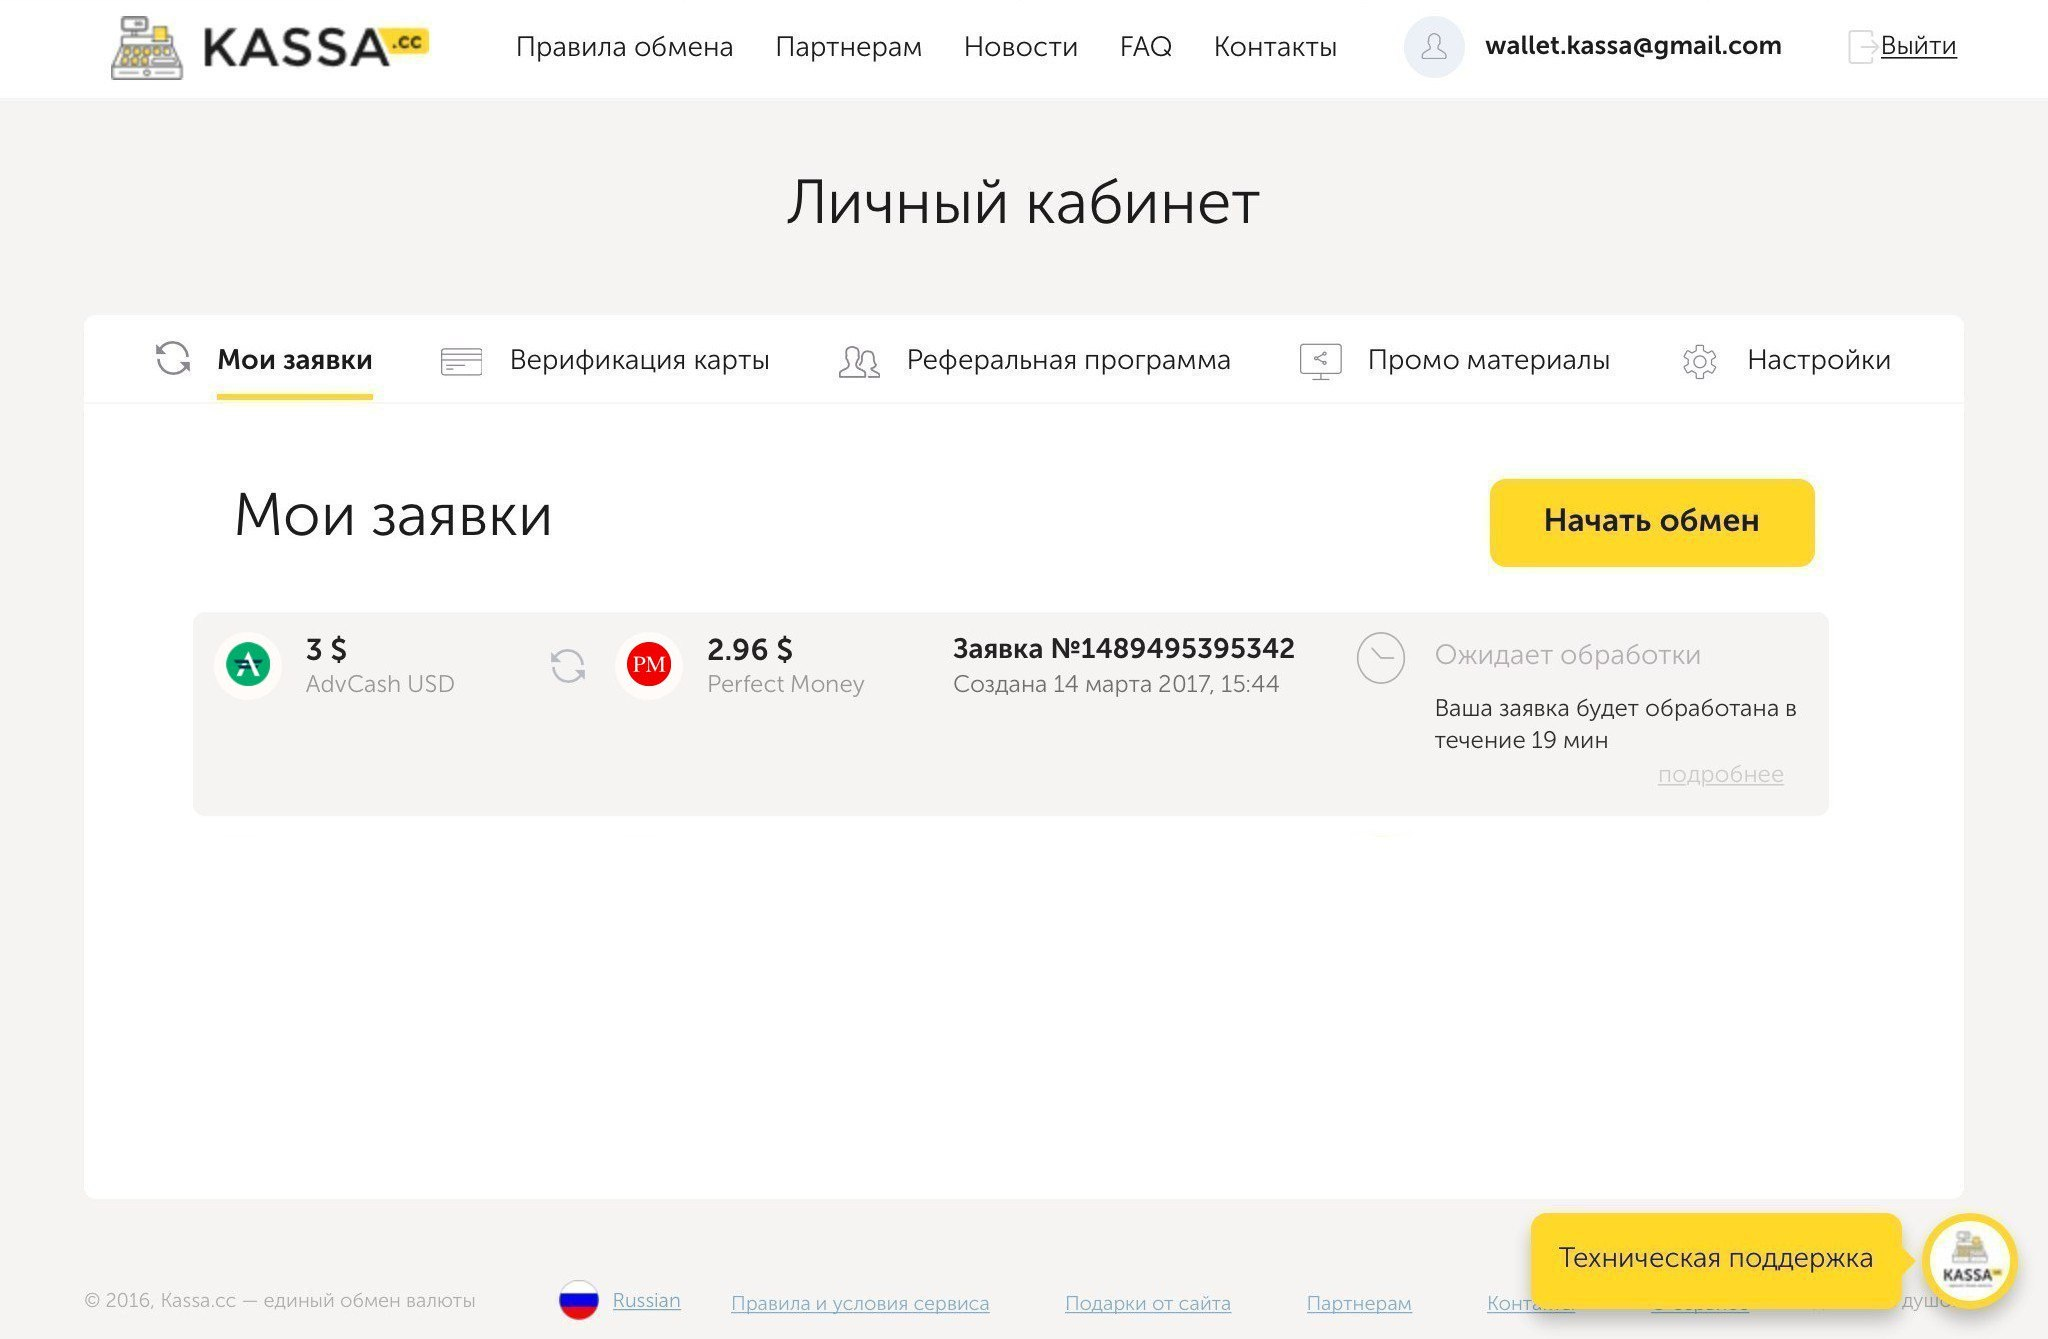 Kassa.cc is a single currency exchange. Exchange AdvCash USD for Perfect Money USD